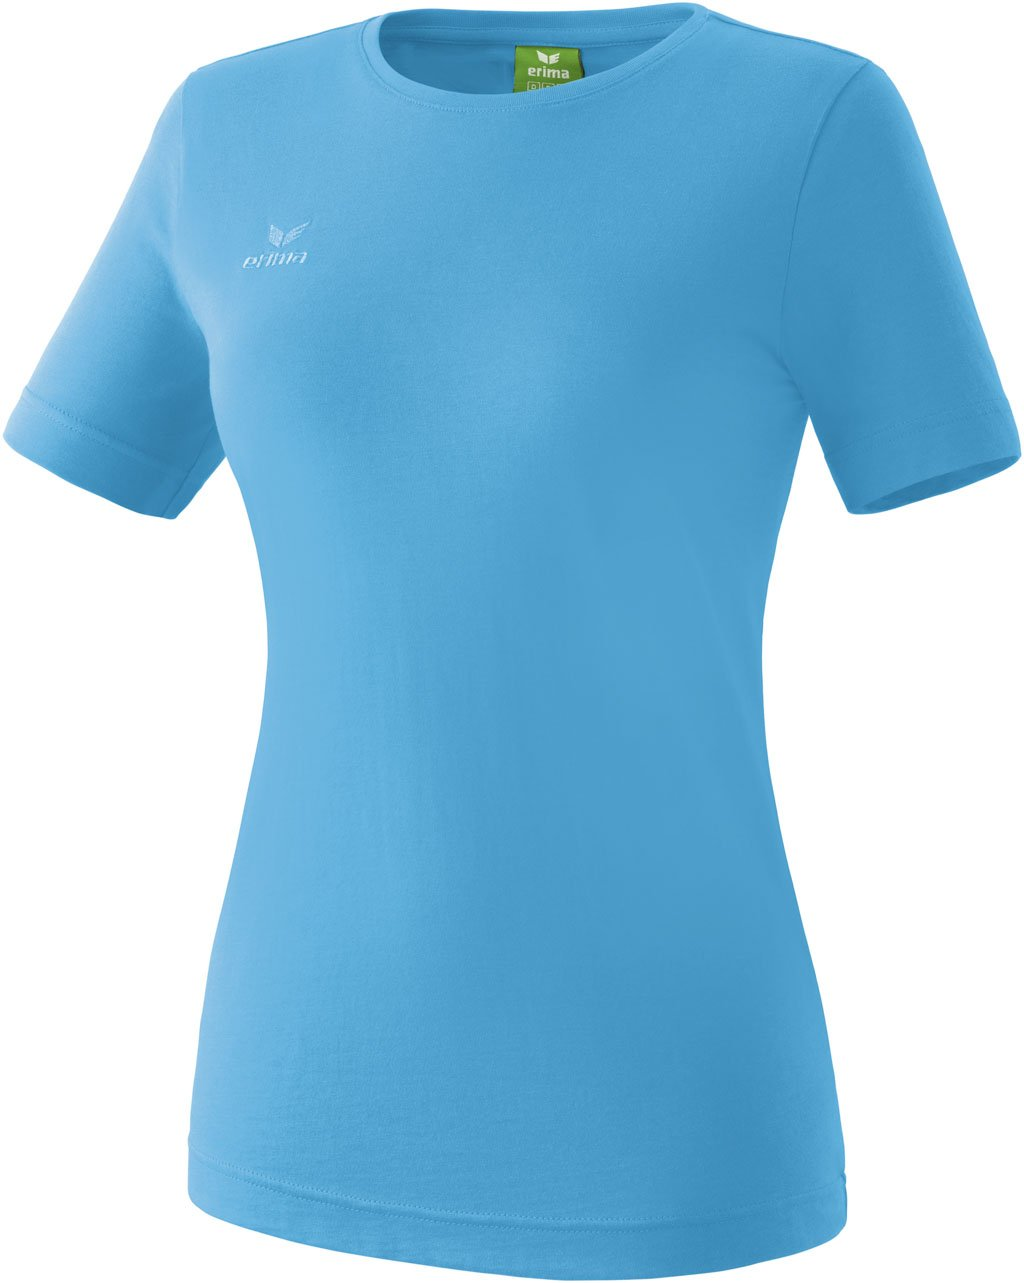 Erima »Basic Line« Teamsport T-Shirt für Damen